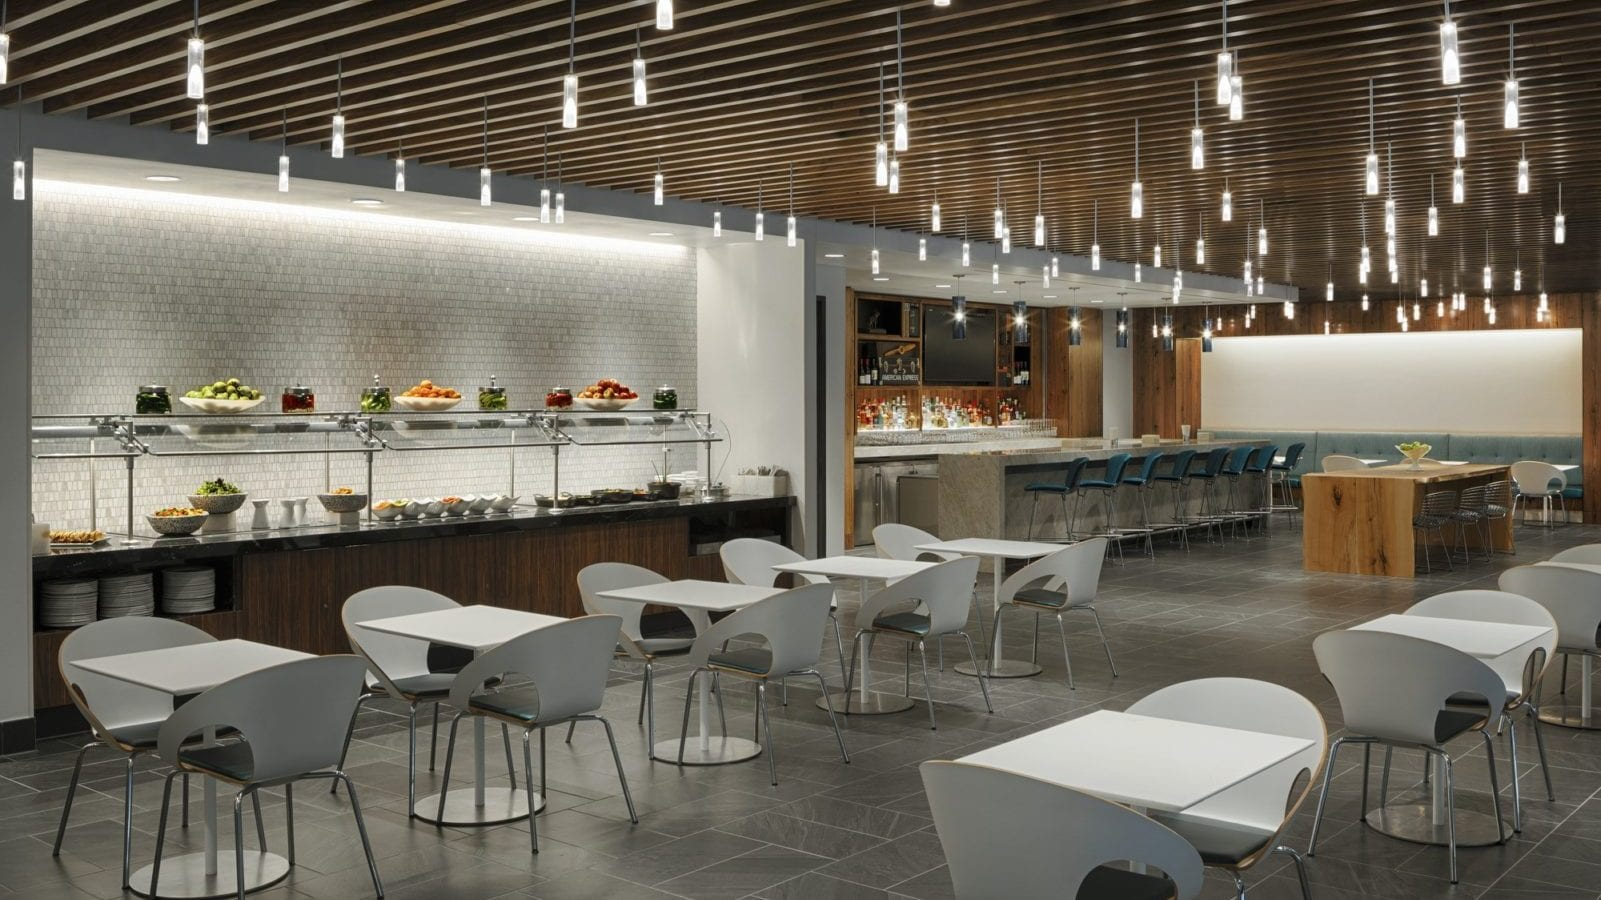 The American Express Centurion Lounge benefits from an abundance of natural light.